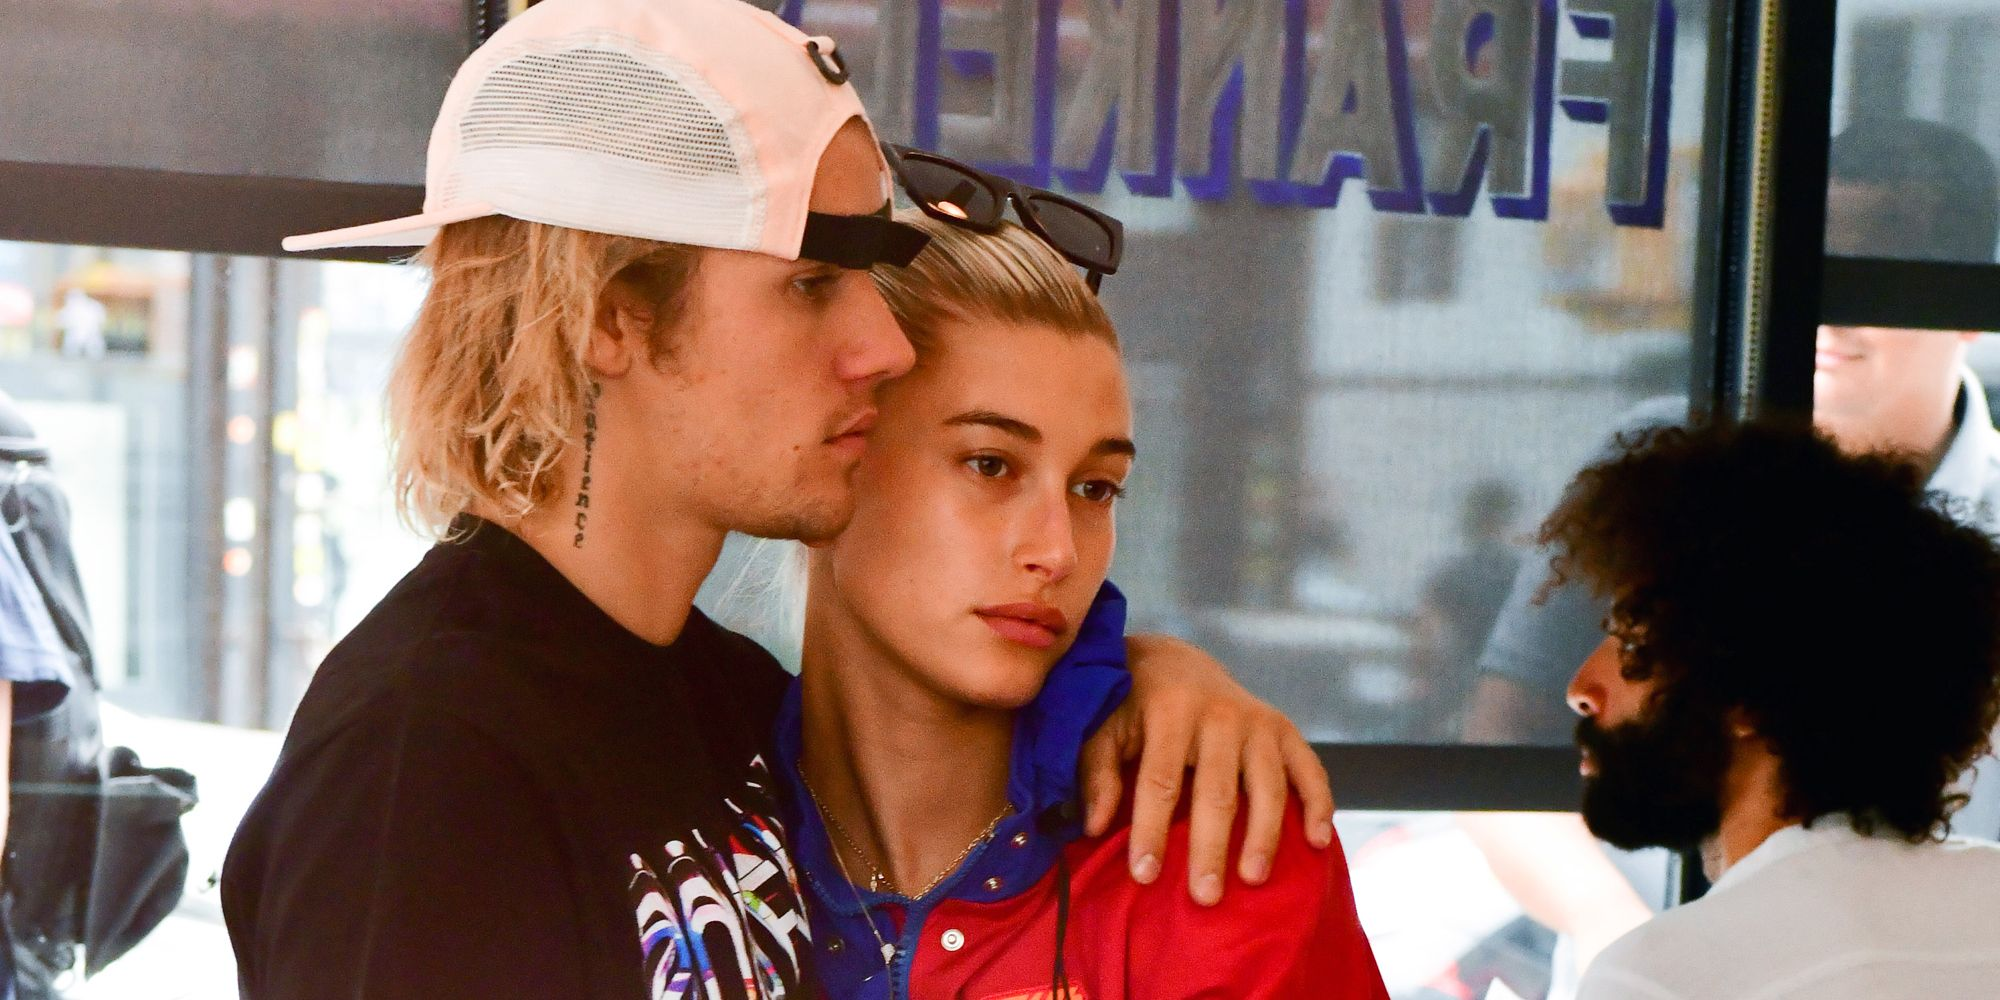 Justin Bieber and Hailey Baldwin Just Went to Get Their Marriage License